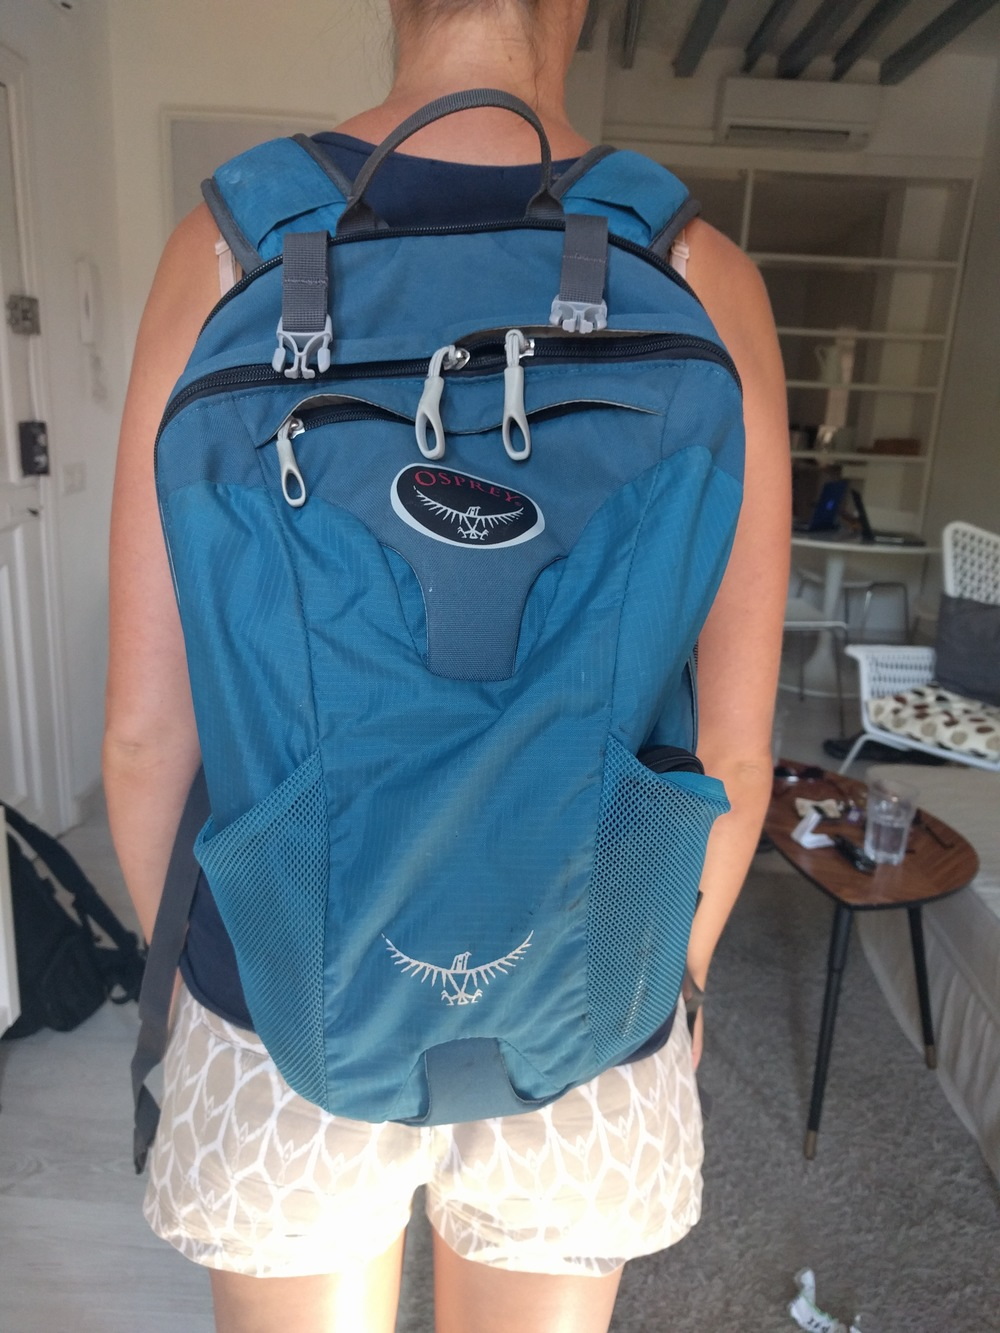 Jess wearing a loaded Farpoint daypack.